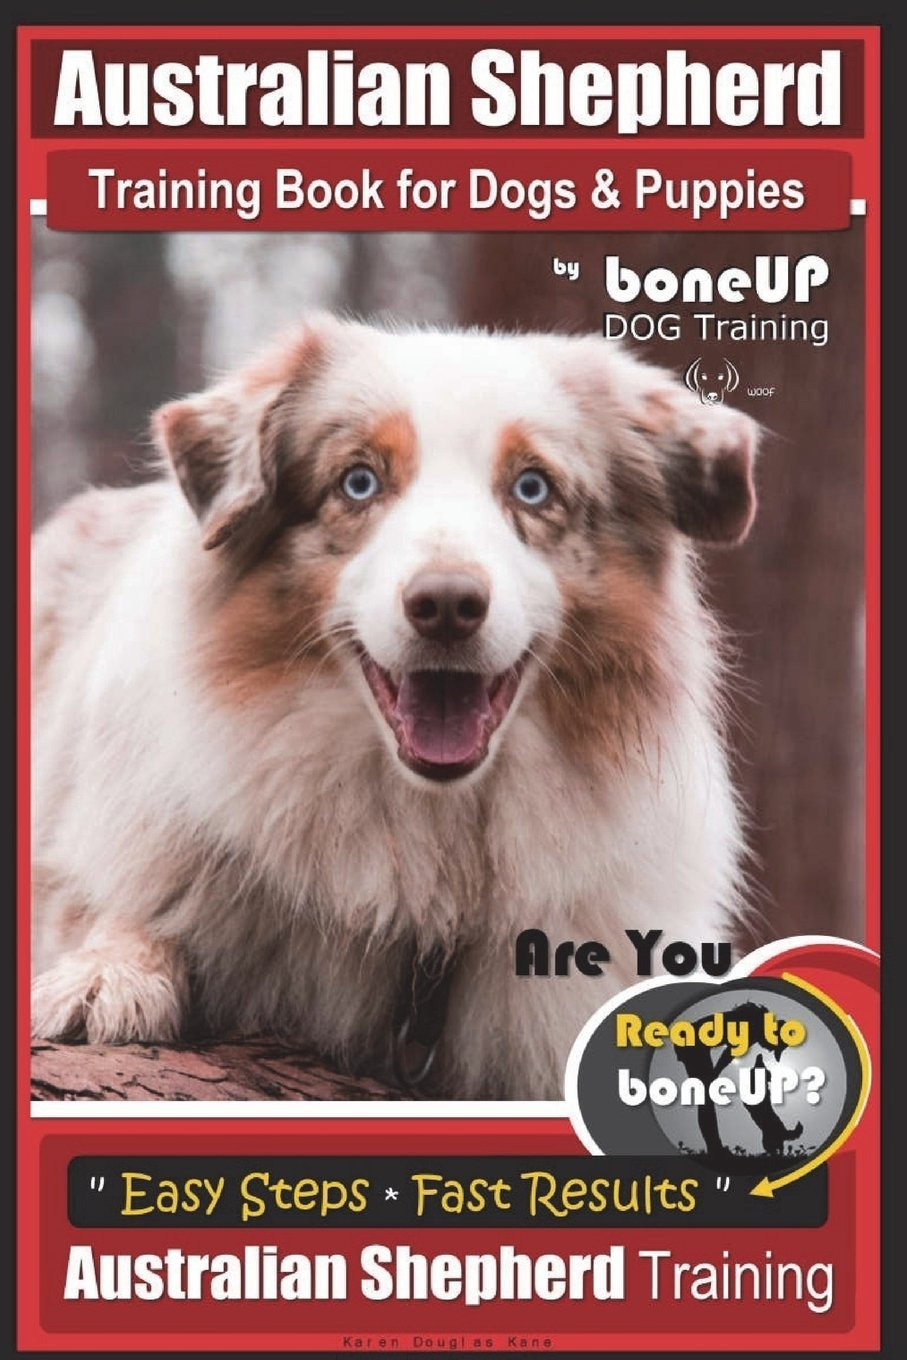 Read Online Australian Shepherd Training Book for Dogs & Puppies by boneUP Dog Training: Are You Ready to Bone Up? Simple Steps Quick Results Australian Shepherd Training (Volume 3) PDF